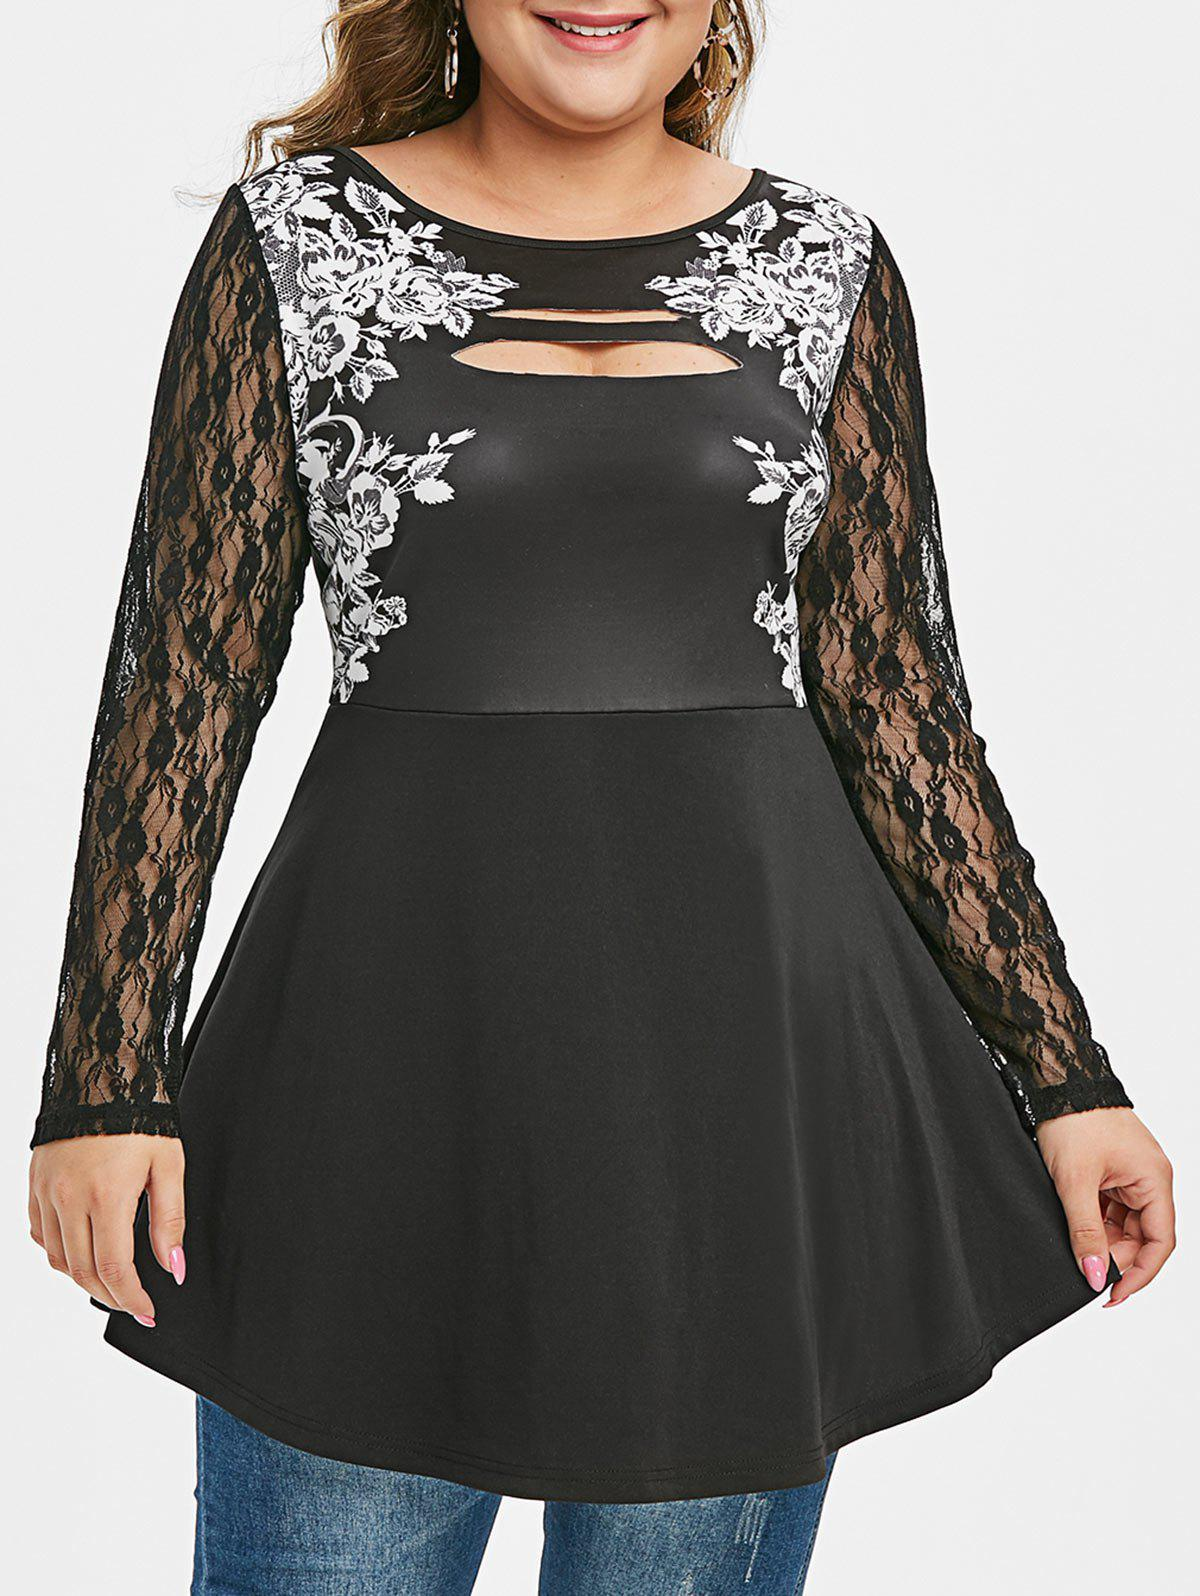 Plus Size Lace Sleeve Floral Print Ripped T Shirt - BLACK L